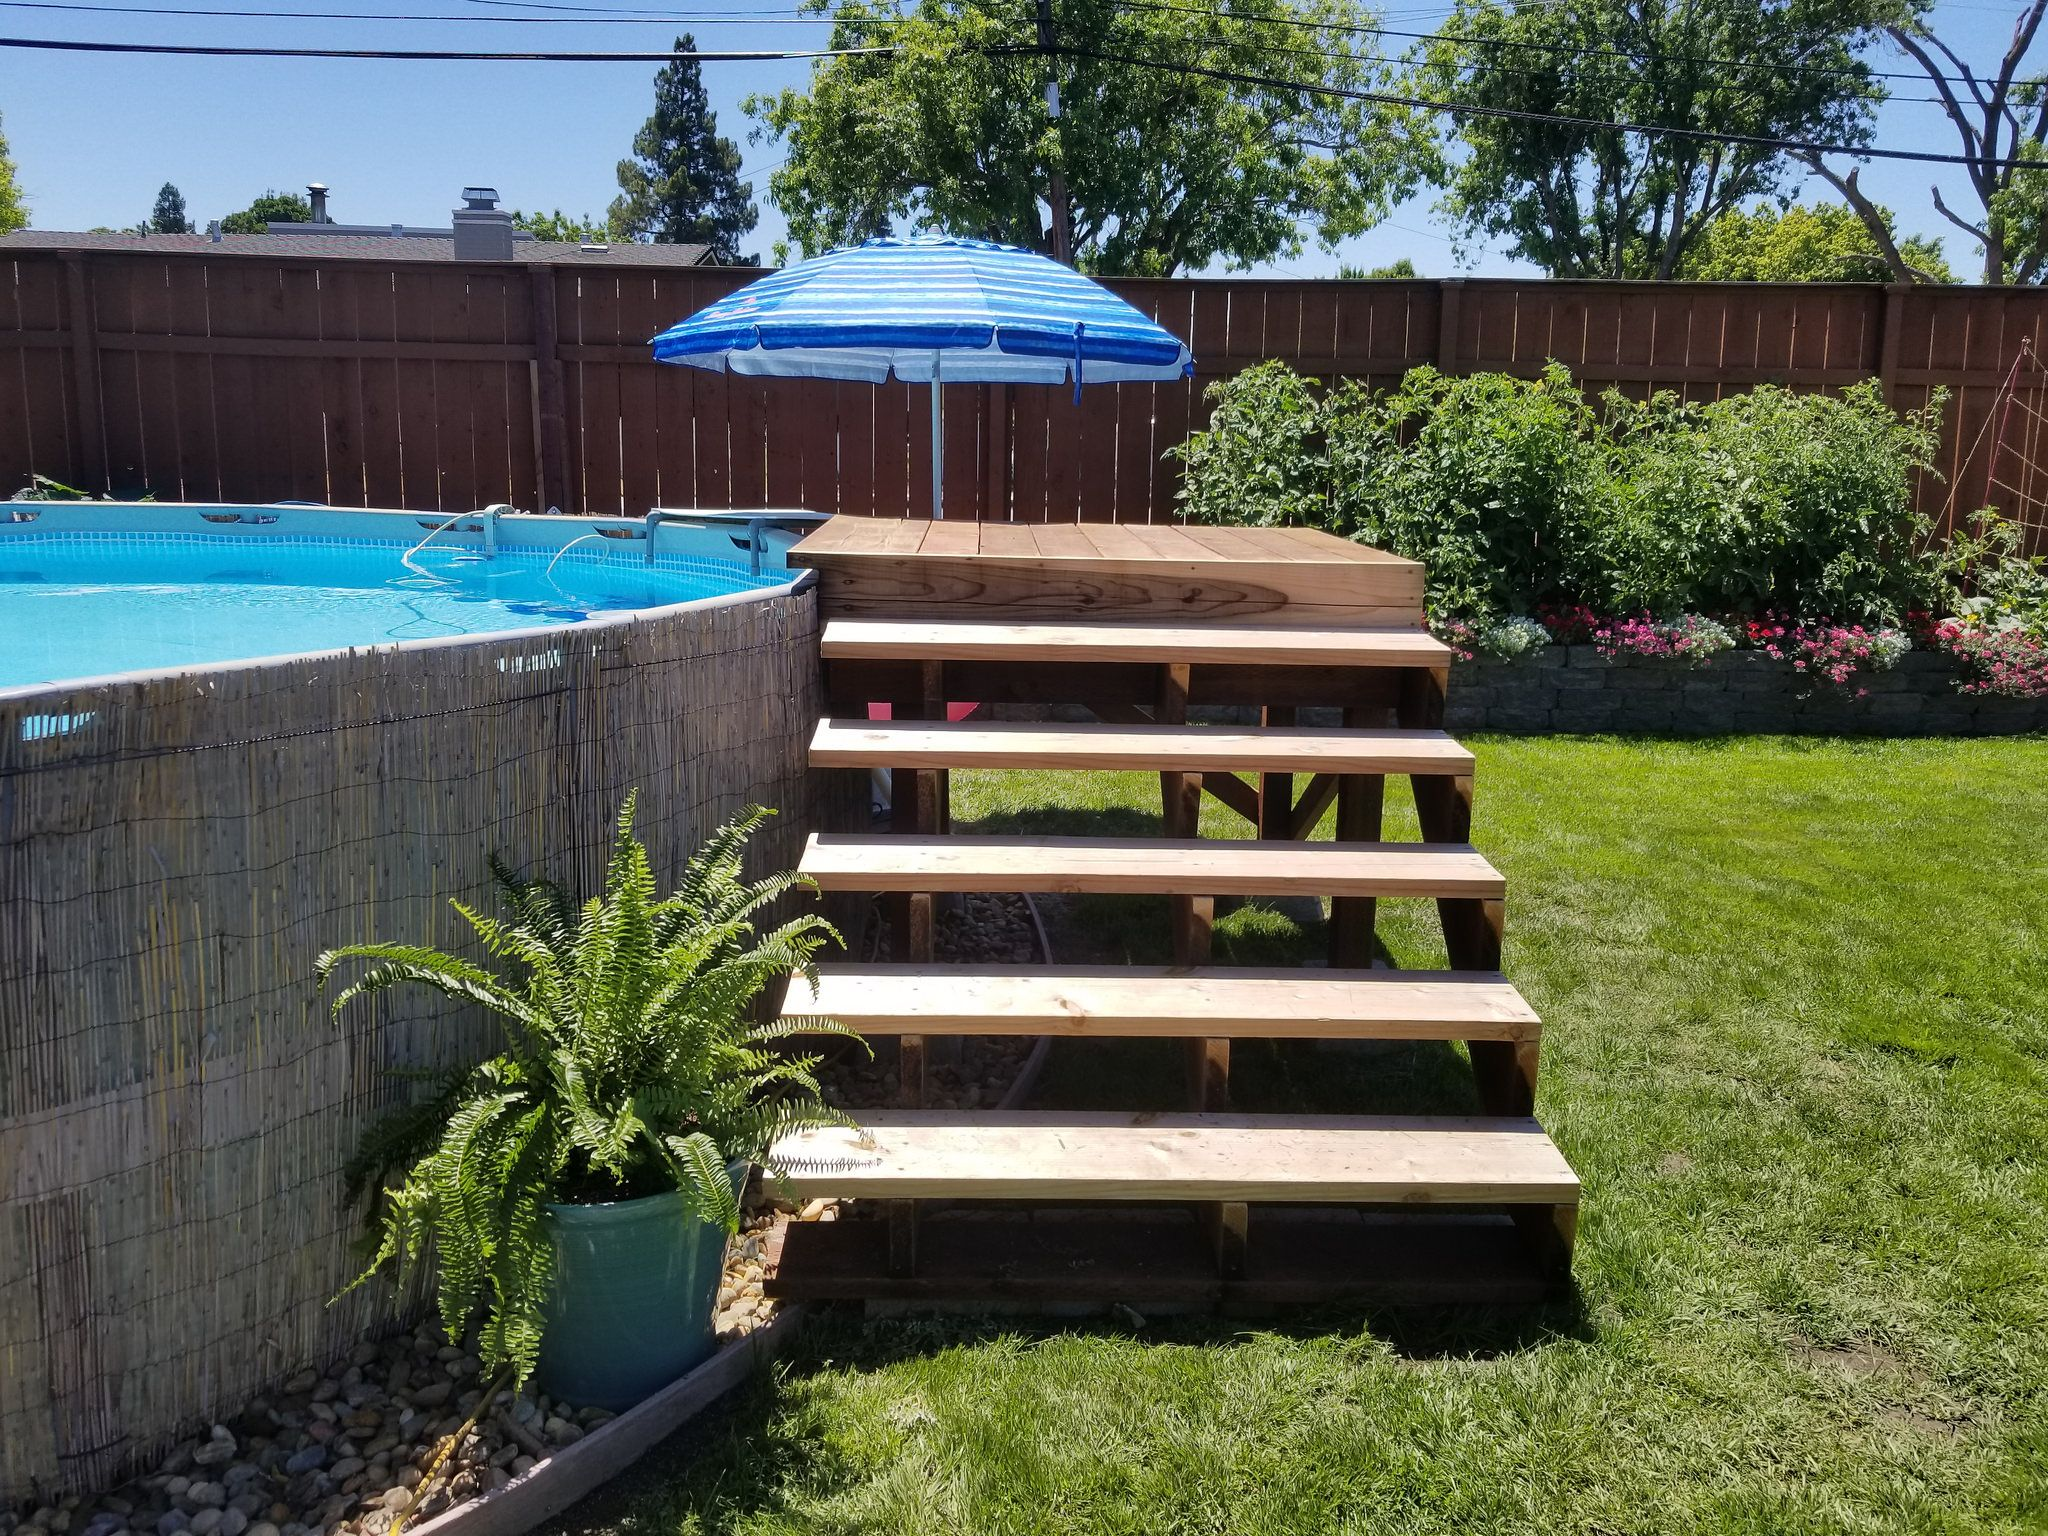 20170618 114845 Pool Landscaping Above Ground Pool